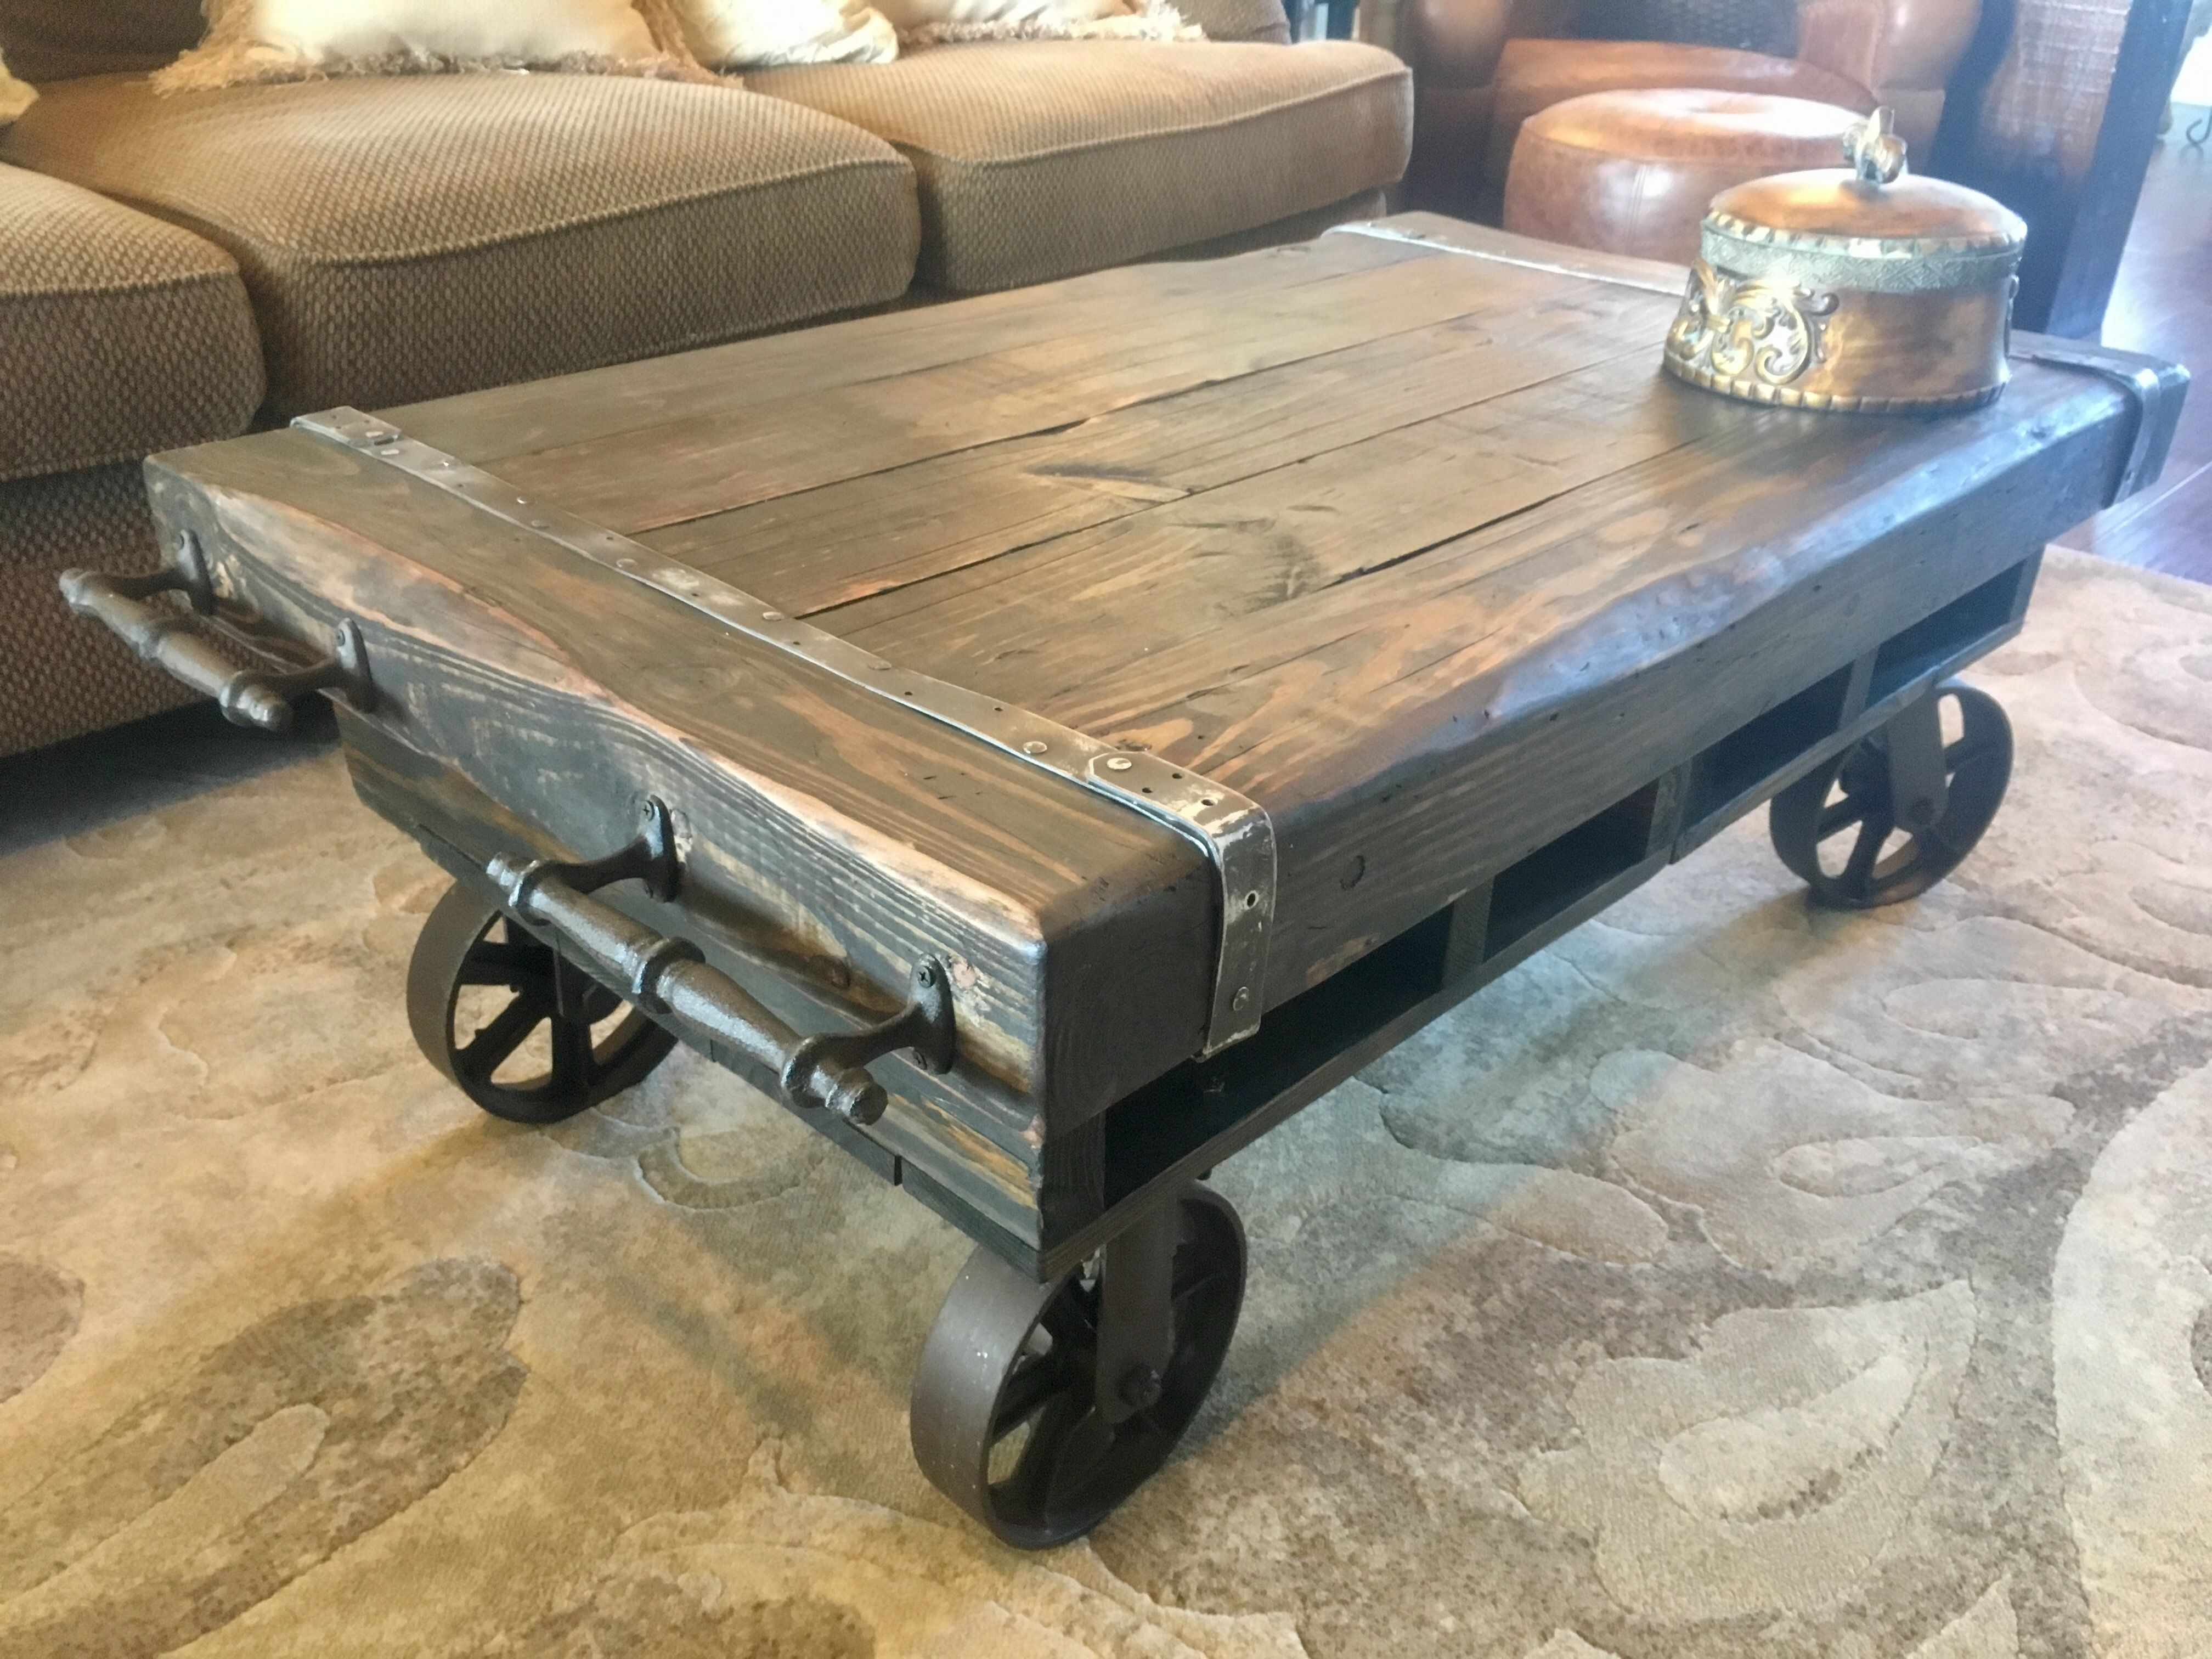 Rustic Factory Cart Coffee Table From Bacs Designs Rustic Coffee Tables Cart Coffee Table Industrial Style Coffee Table Rustic coffee table with wheels